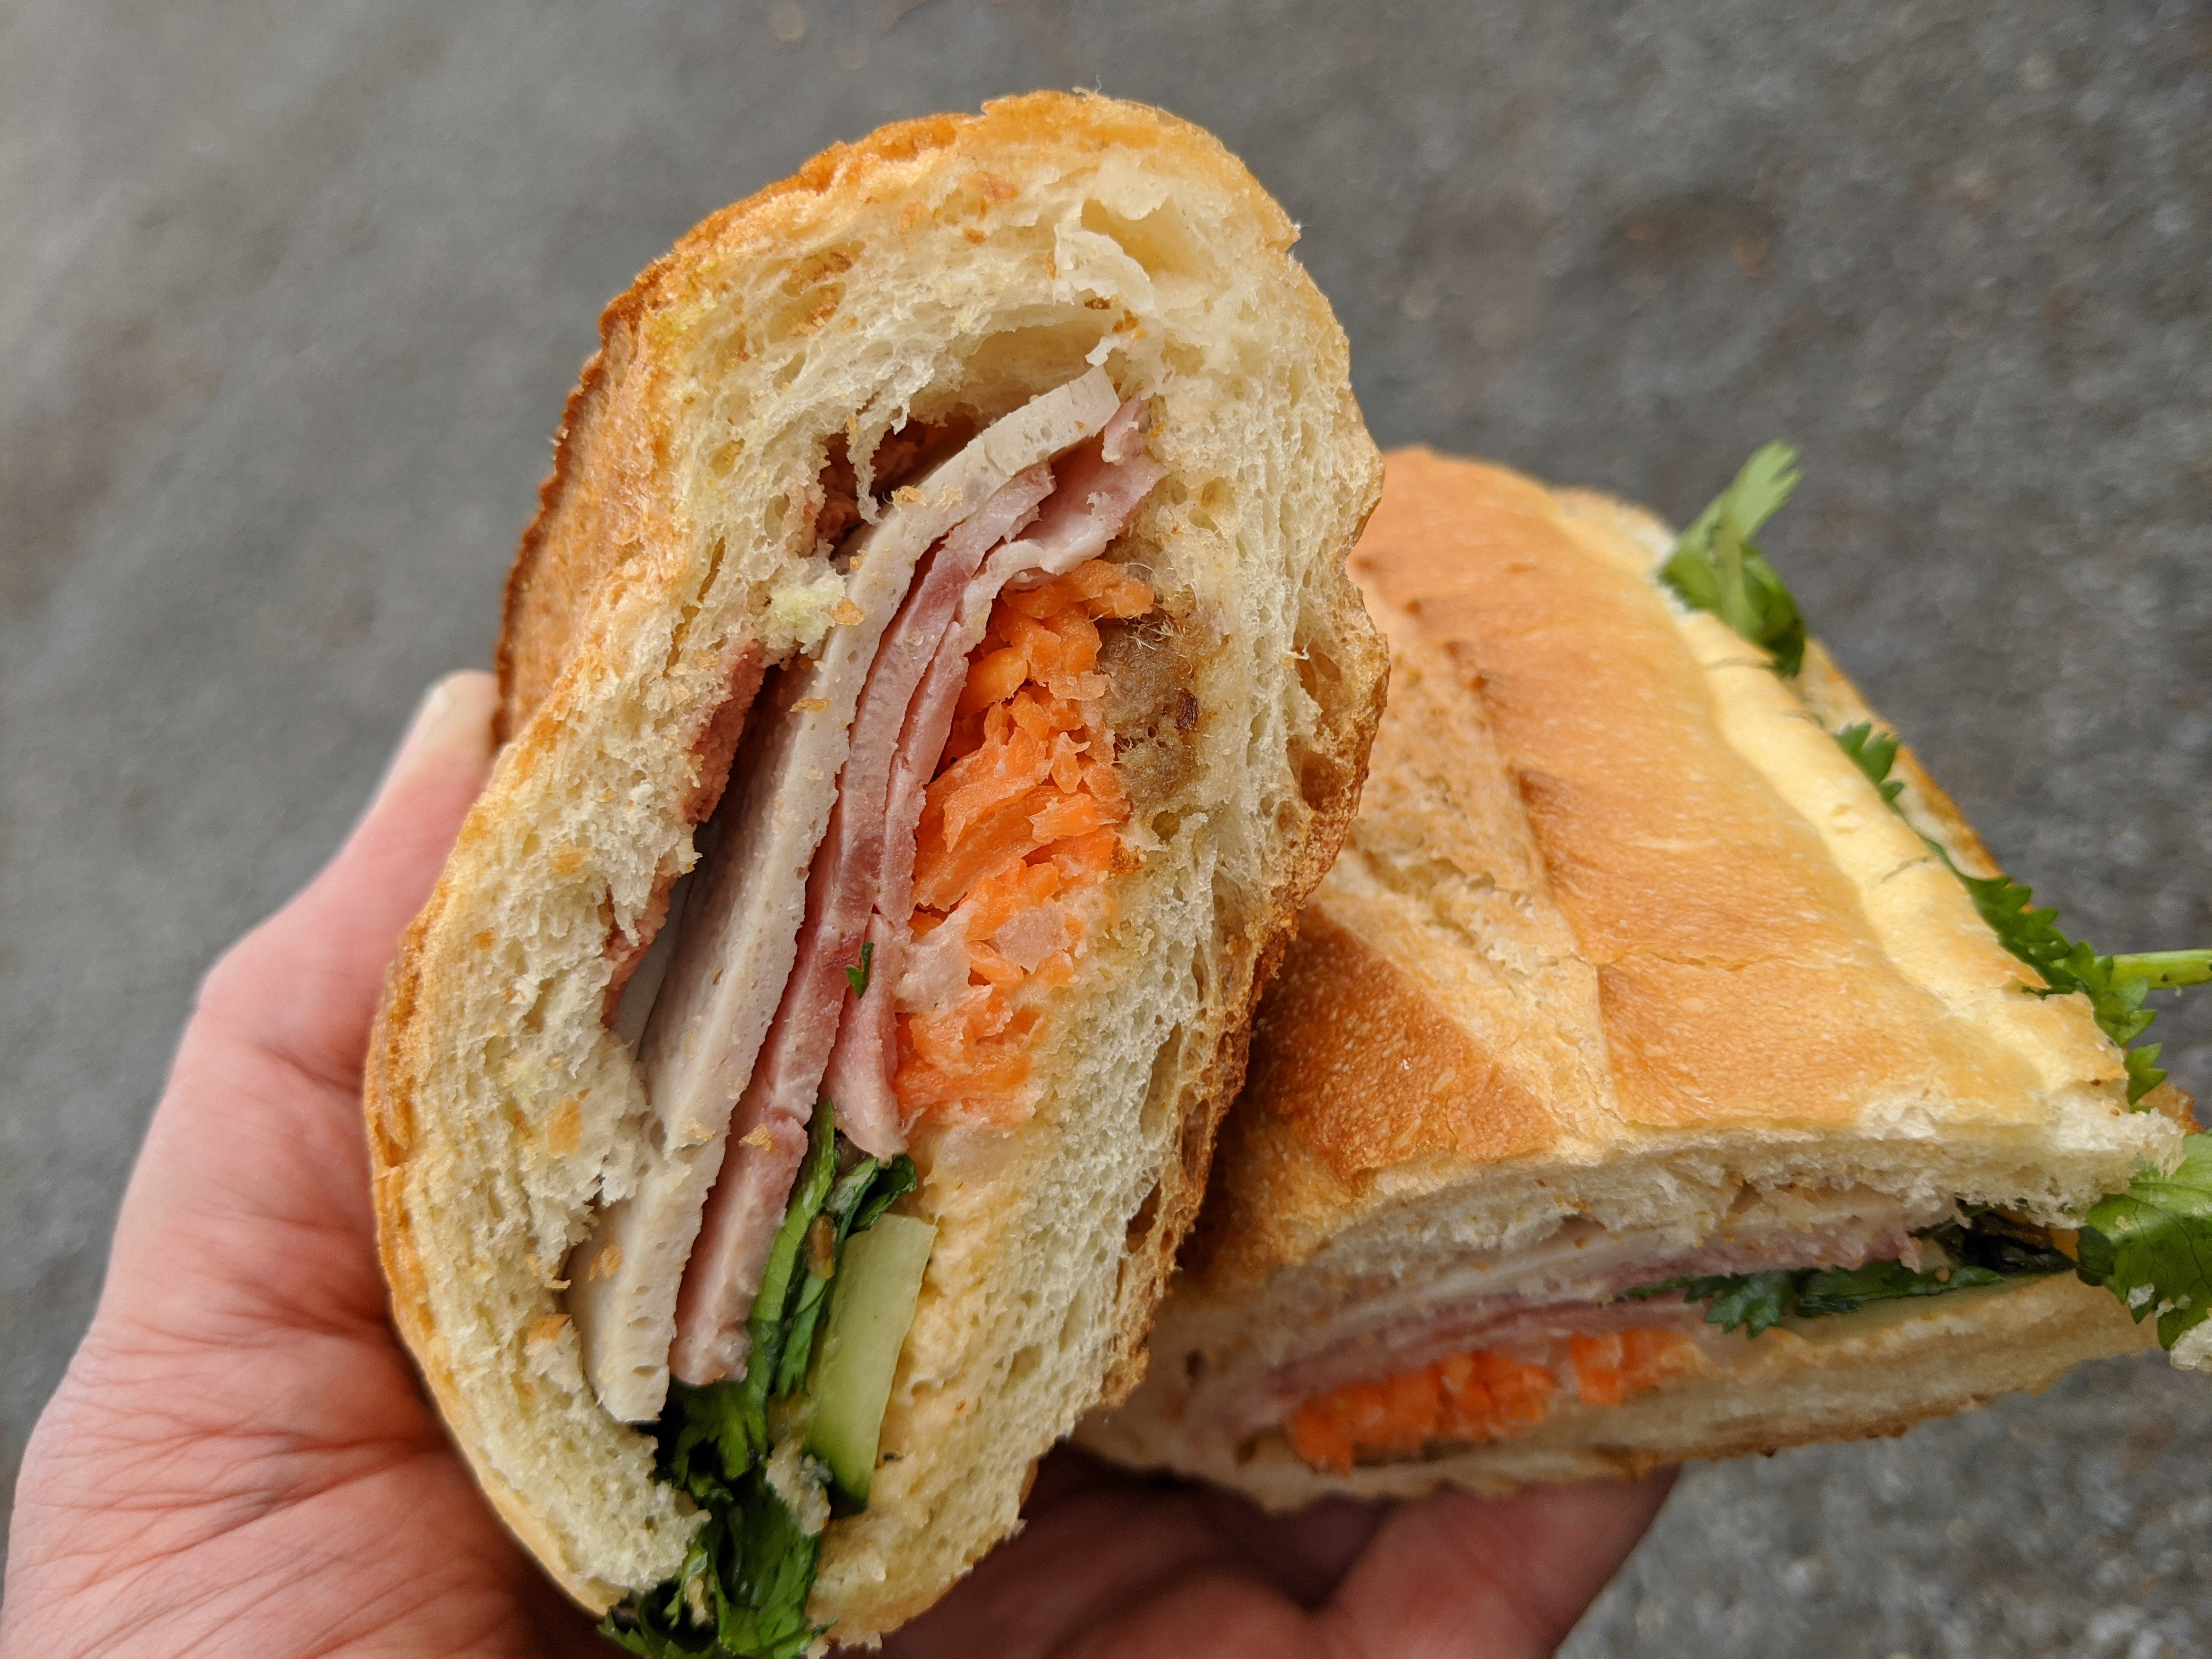 A baguette sandwich cut in half to reveal layers of meat and vegetables.